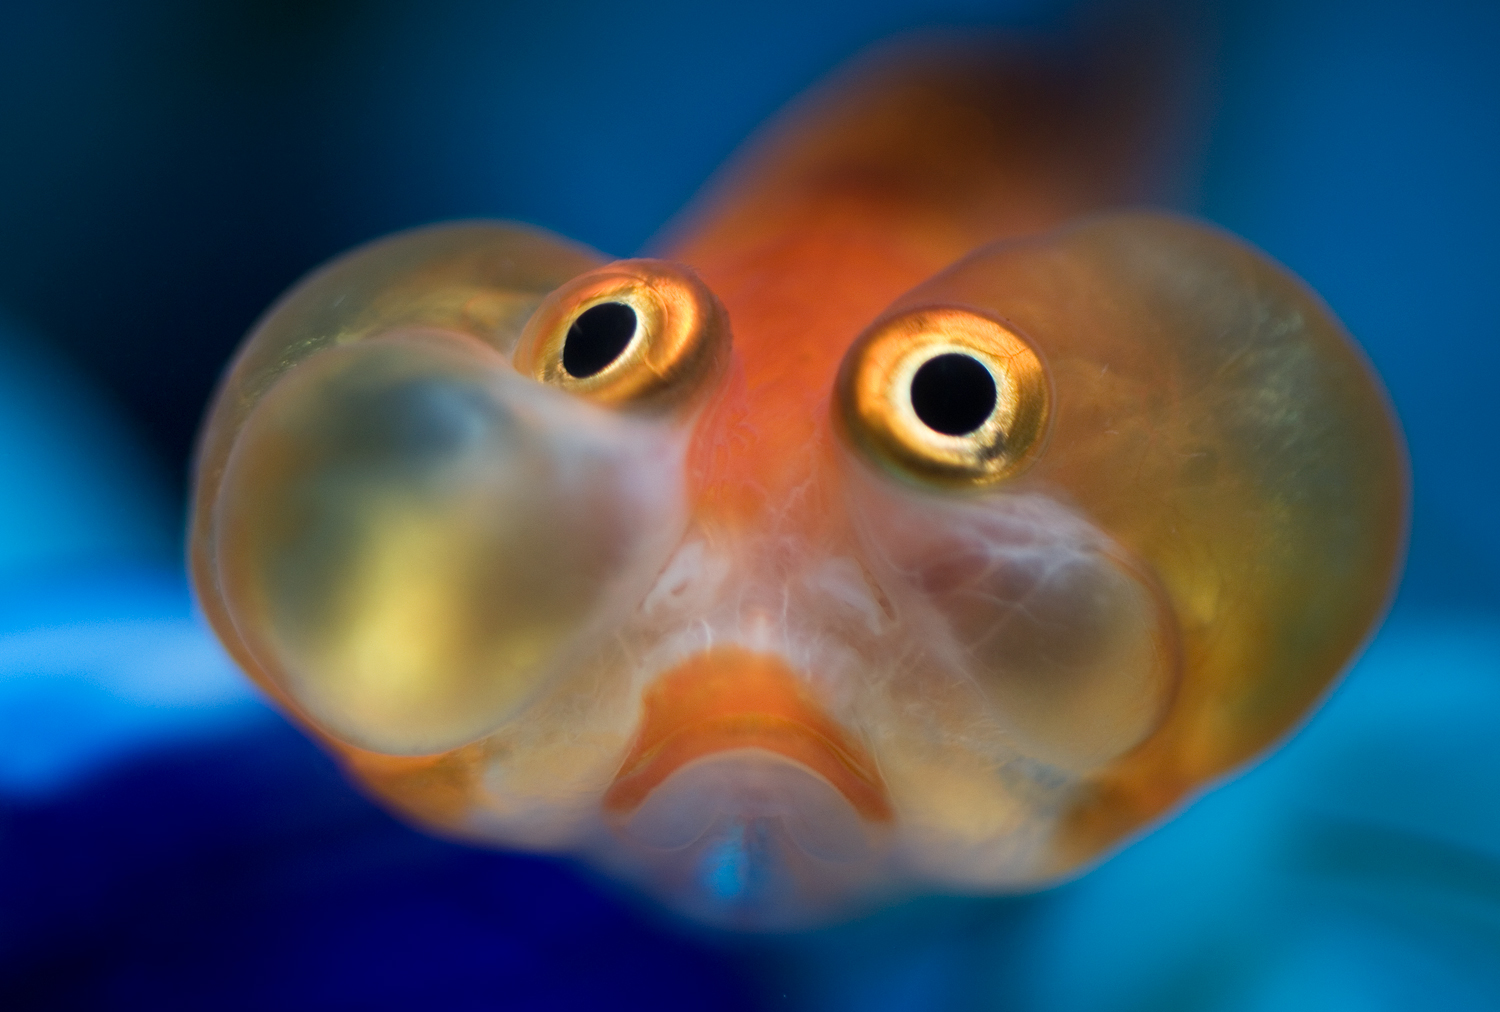 How to photograph a live bubble eye goldfish by emily k for Live to fish